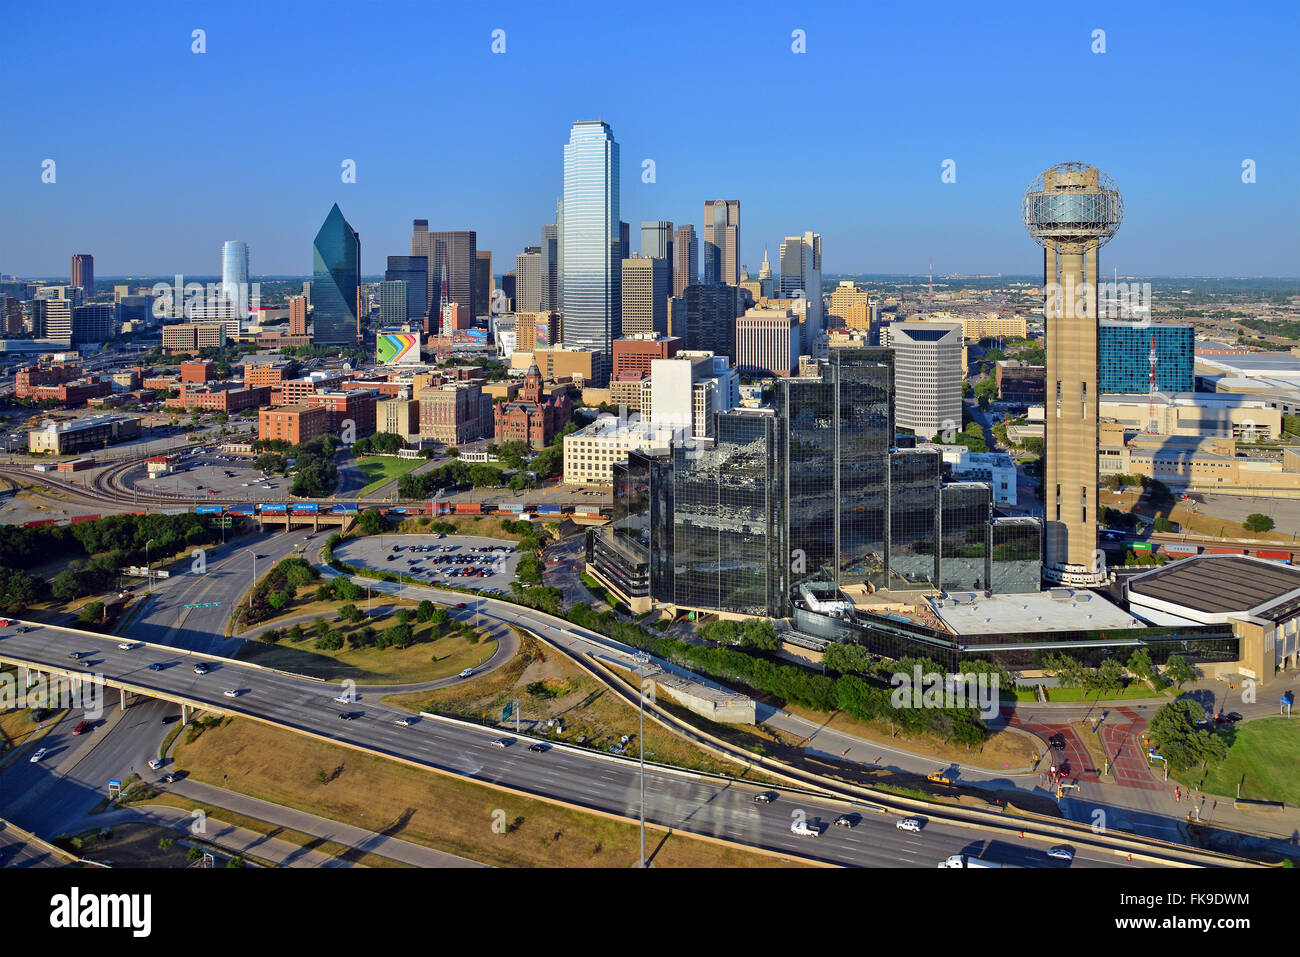 Downtown Dallas, Texas from the air - Stock Image